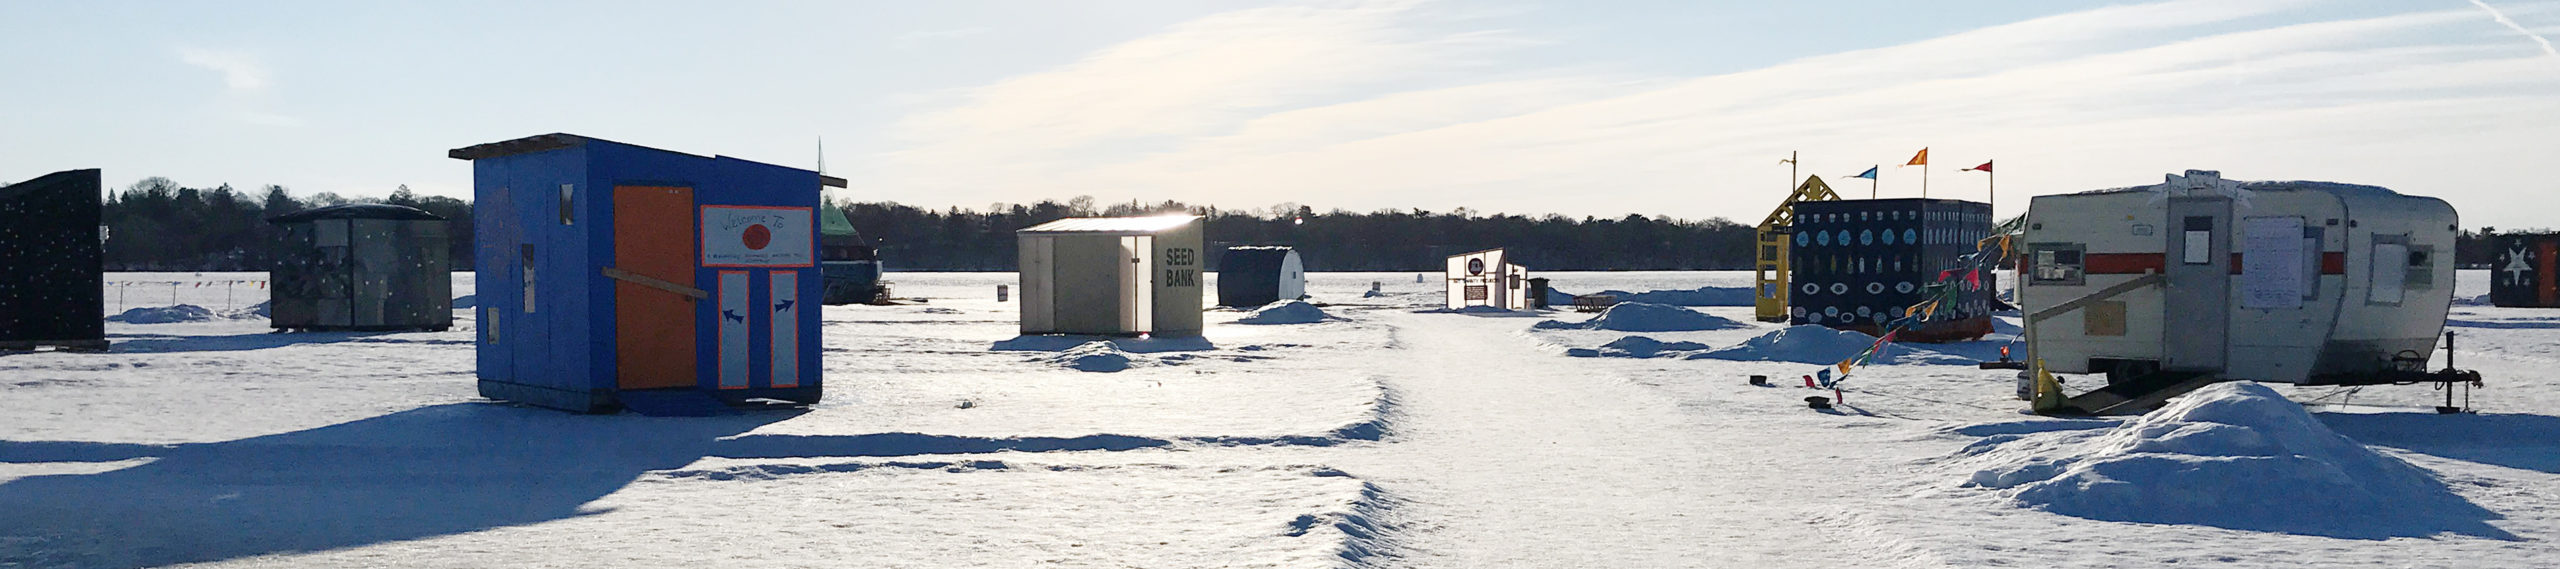 Several shanties and a small camper trailer cast long shadows onto the frozen lake. The sun reflects brightly off one roof.